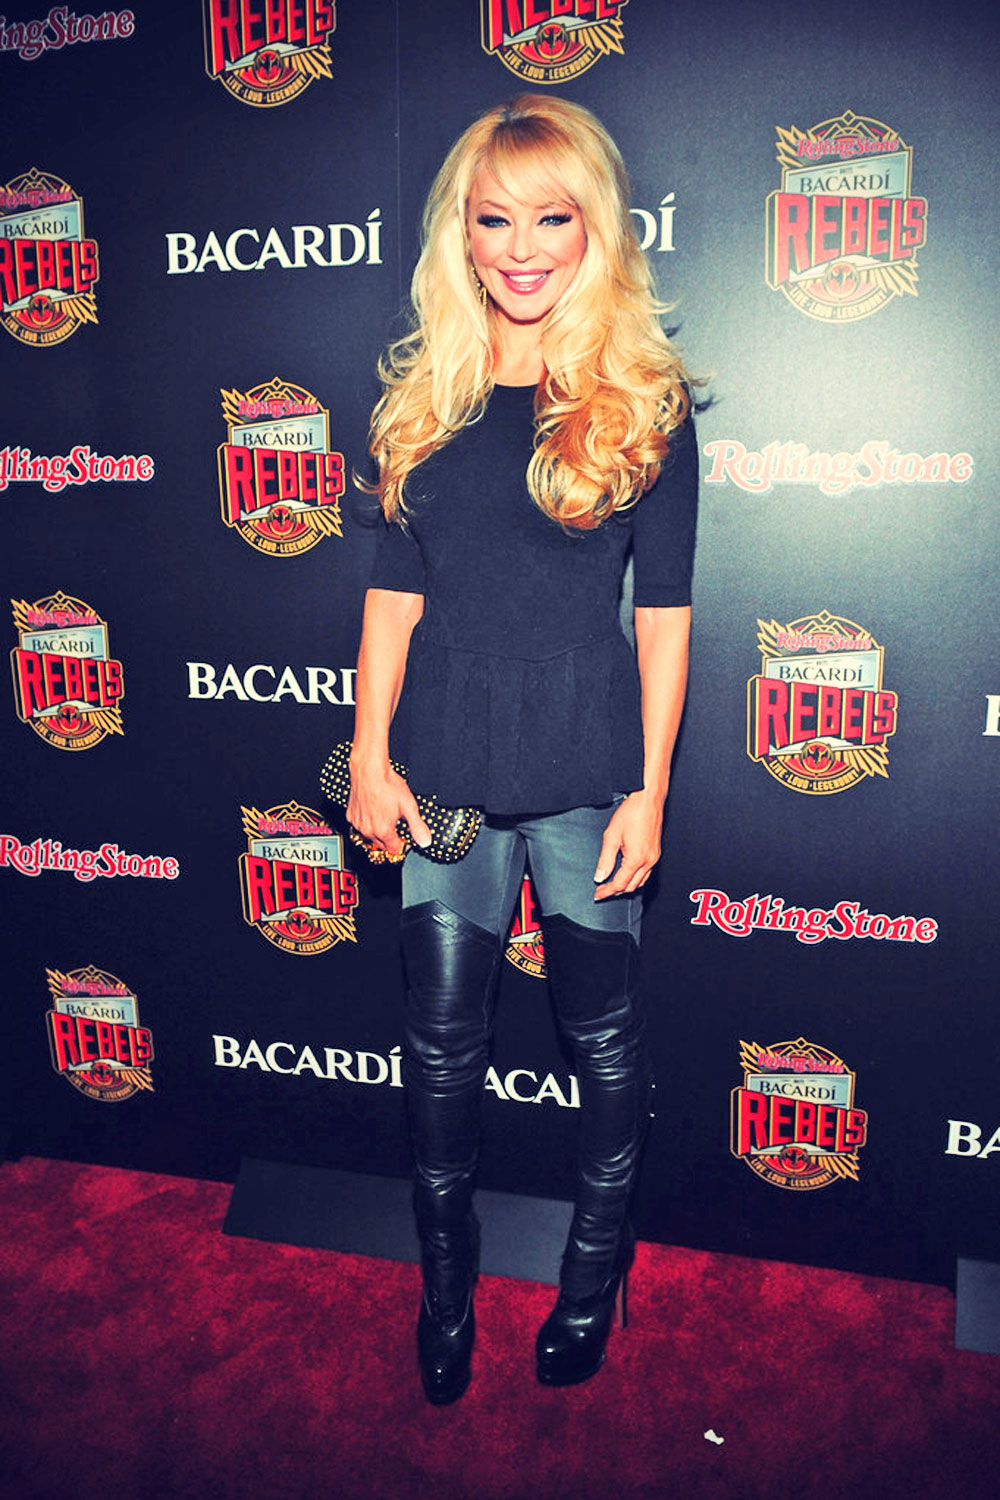 Charlotte Ross attends Rolling Stone hosts Bacardi Rebels